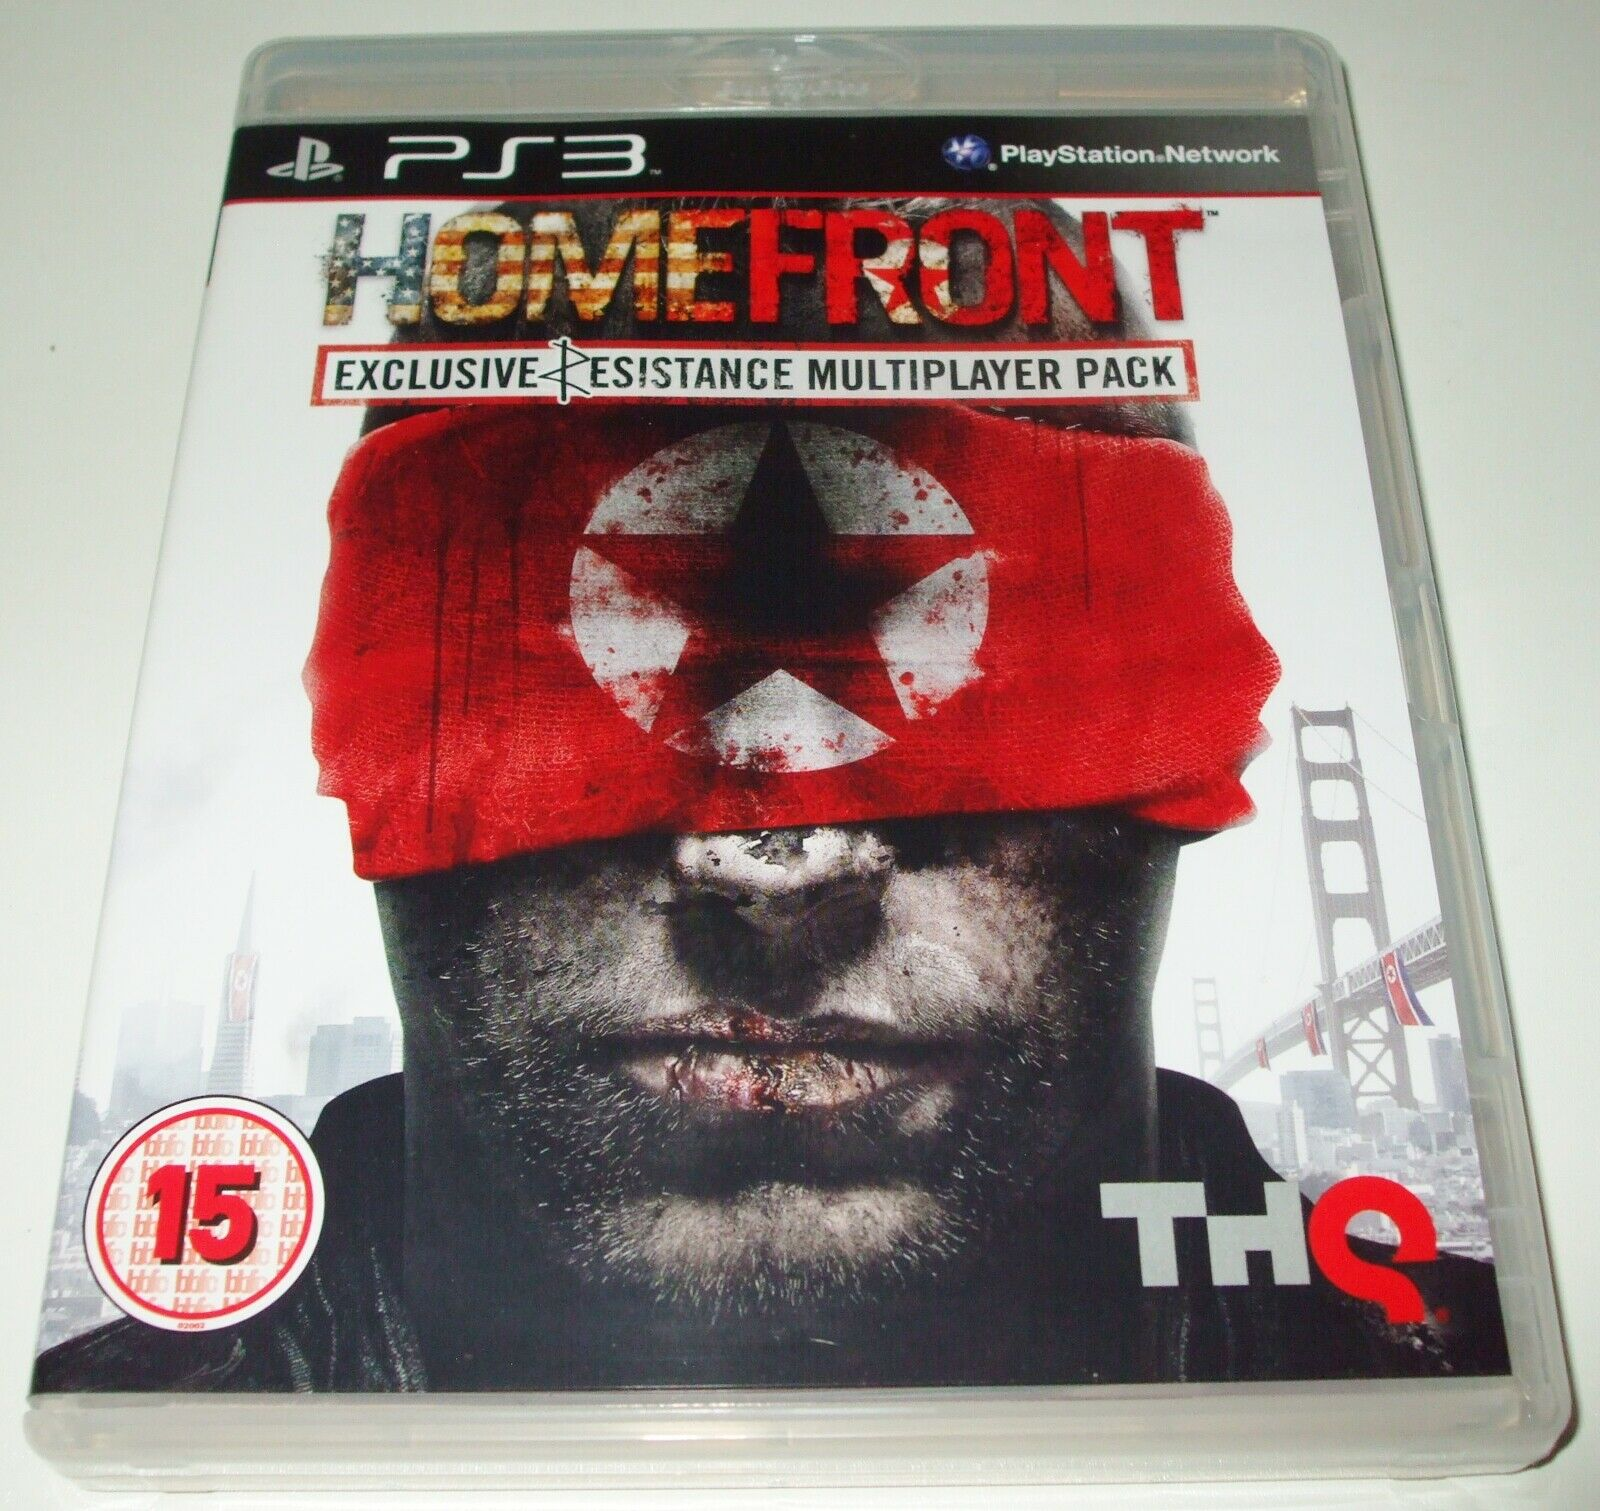 ** HOMEFRONT ** Sony Playstation 3/PS3 FPS War Shooter Game NEW CASE/MINT DISC